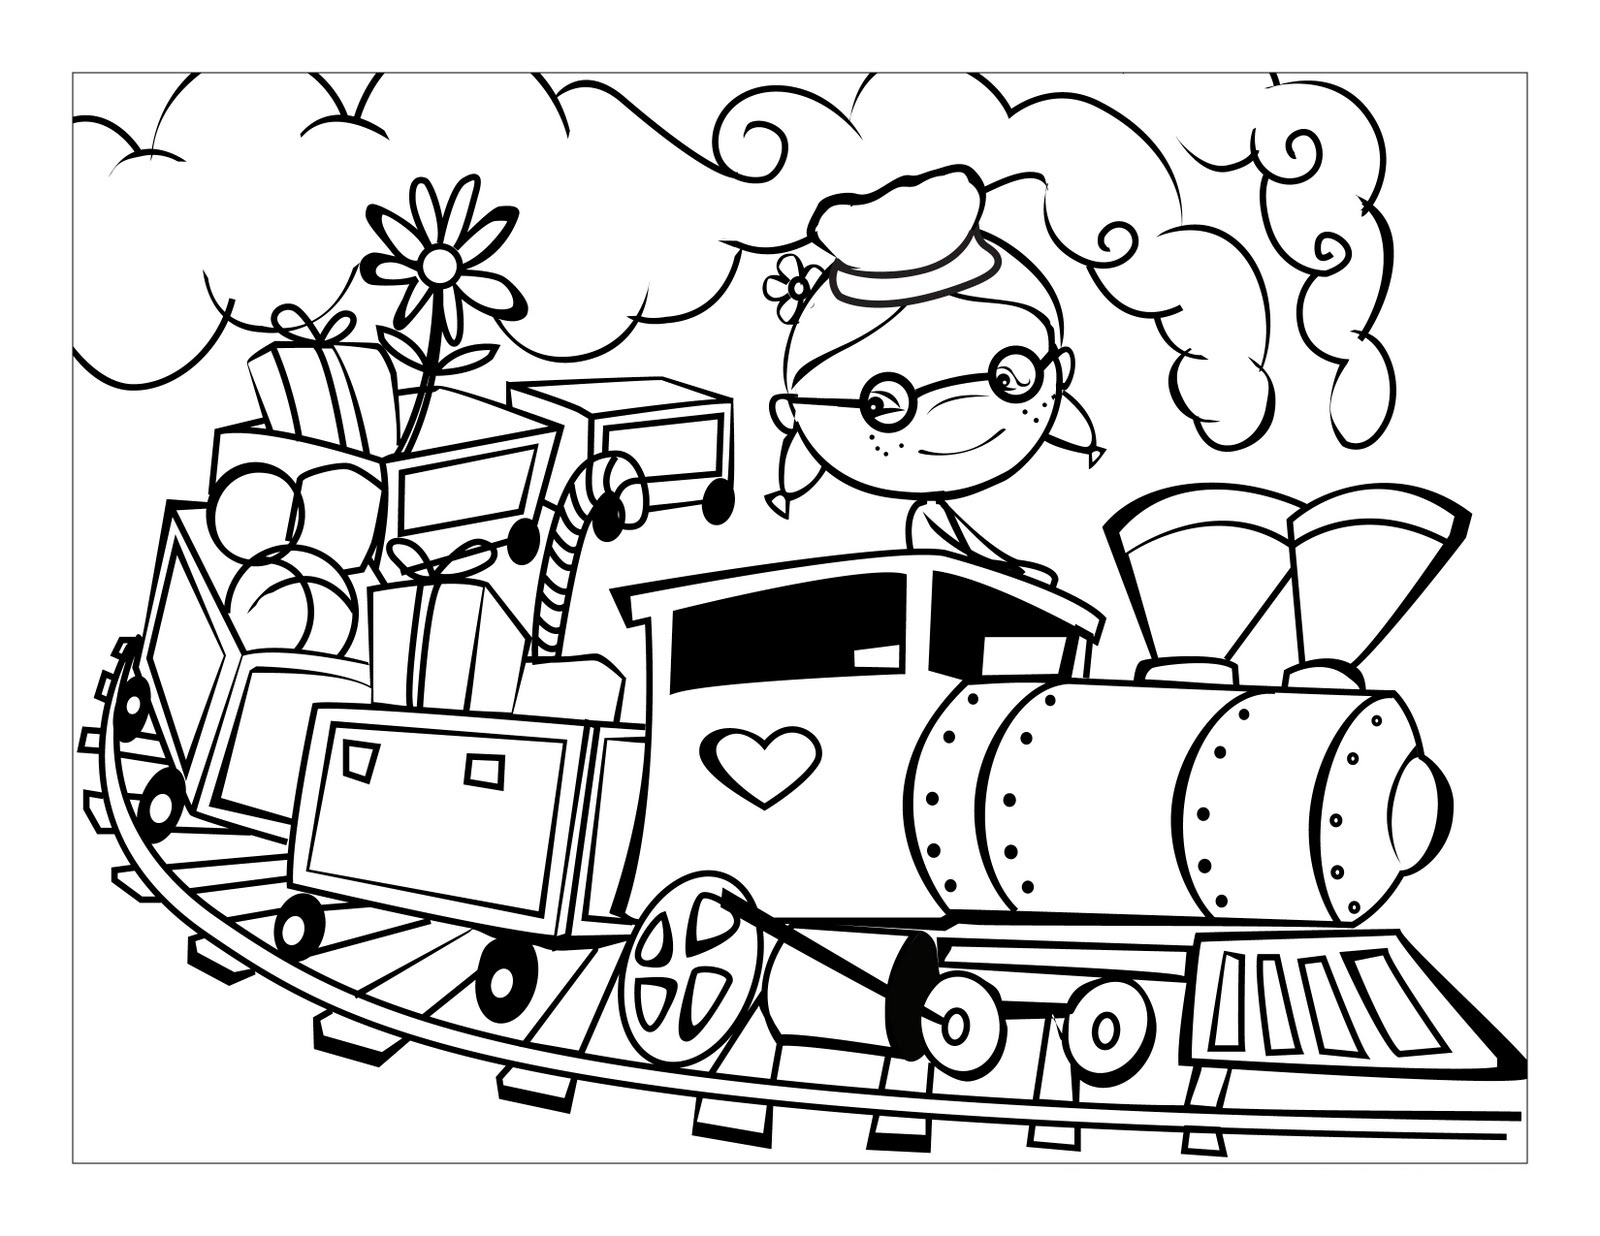 train coloring pages printable train coloring pages download and print train coloring pages pages coloring train printable